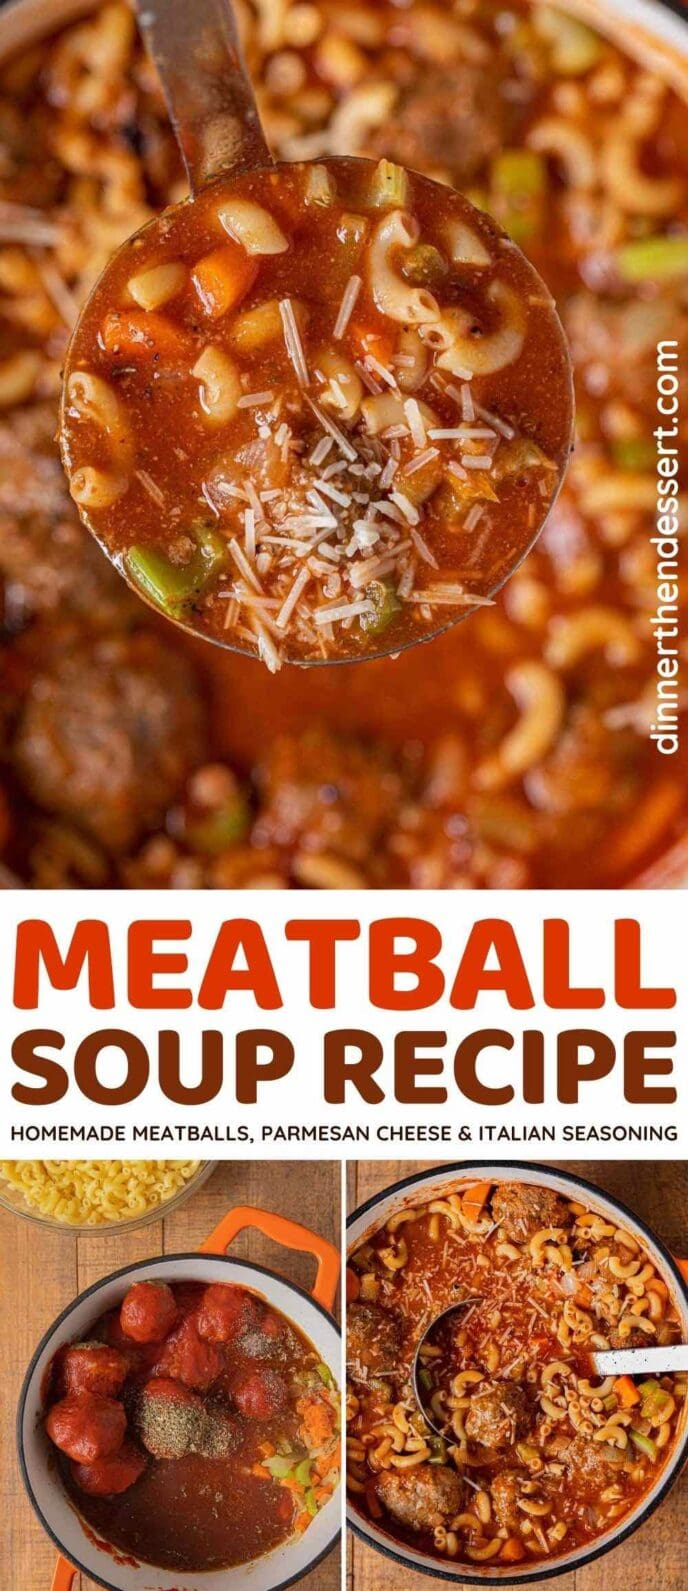 Meatball Soup collage